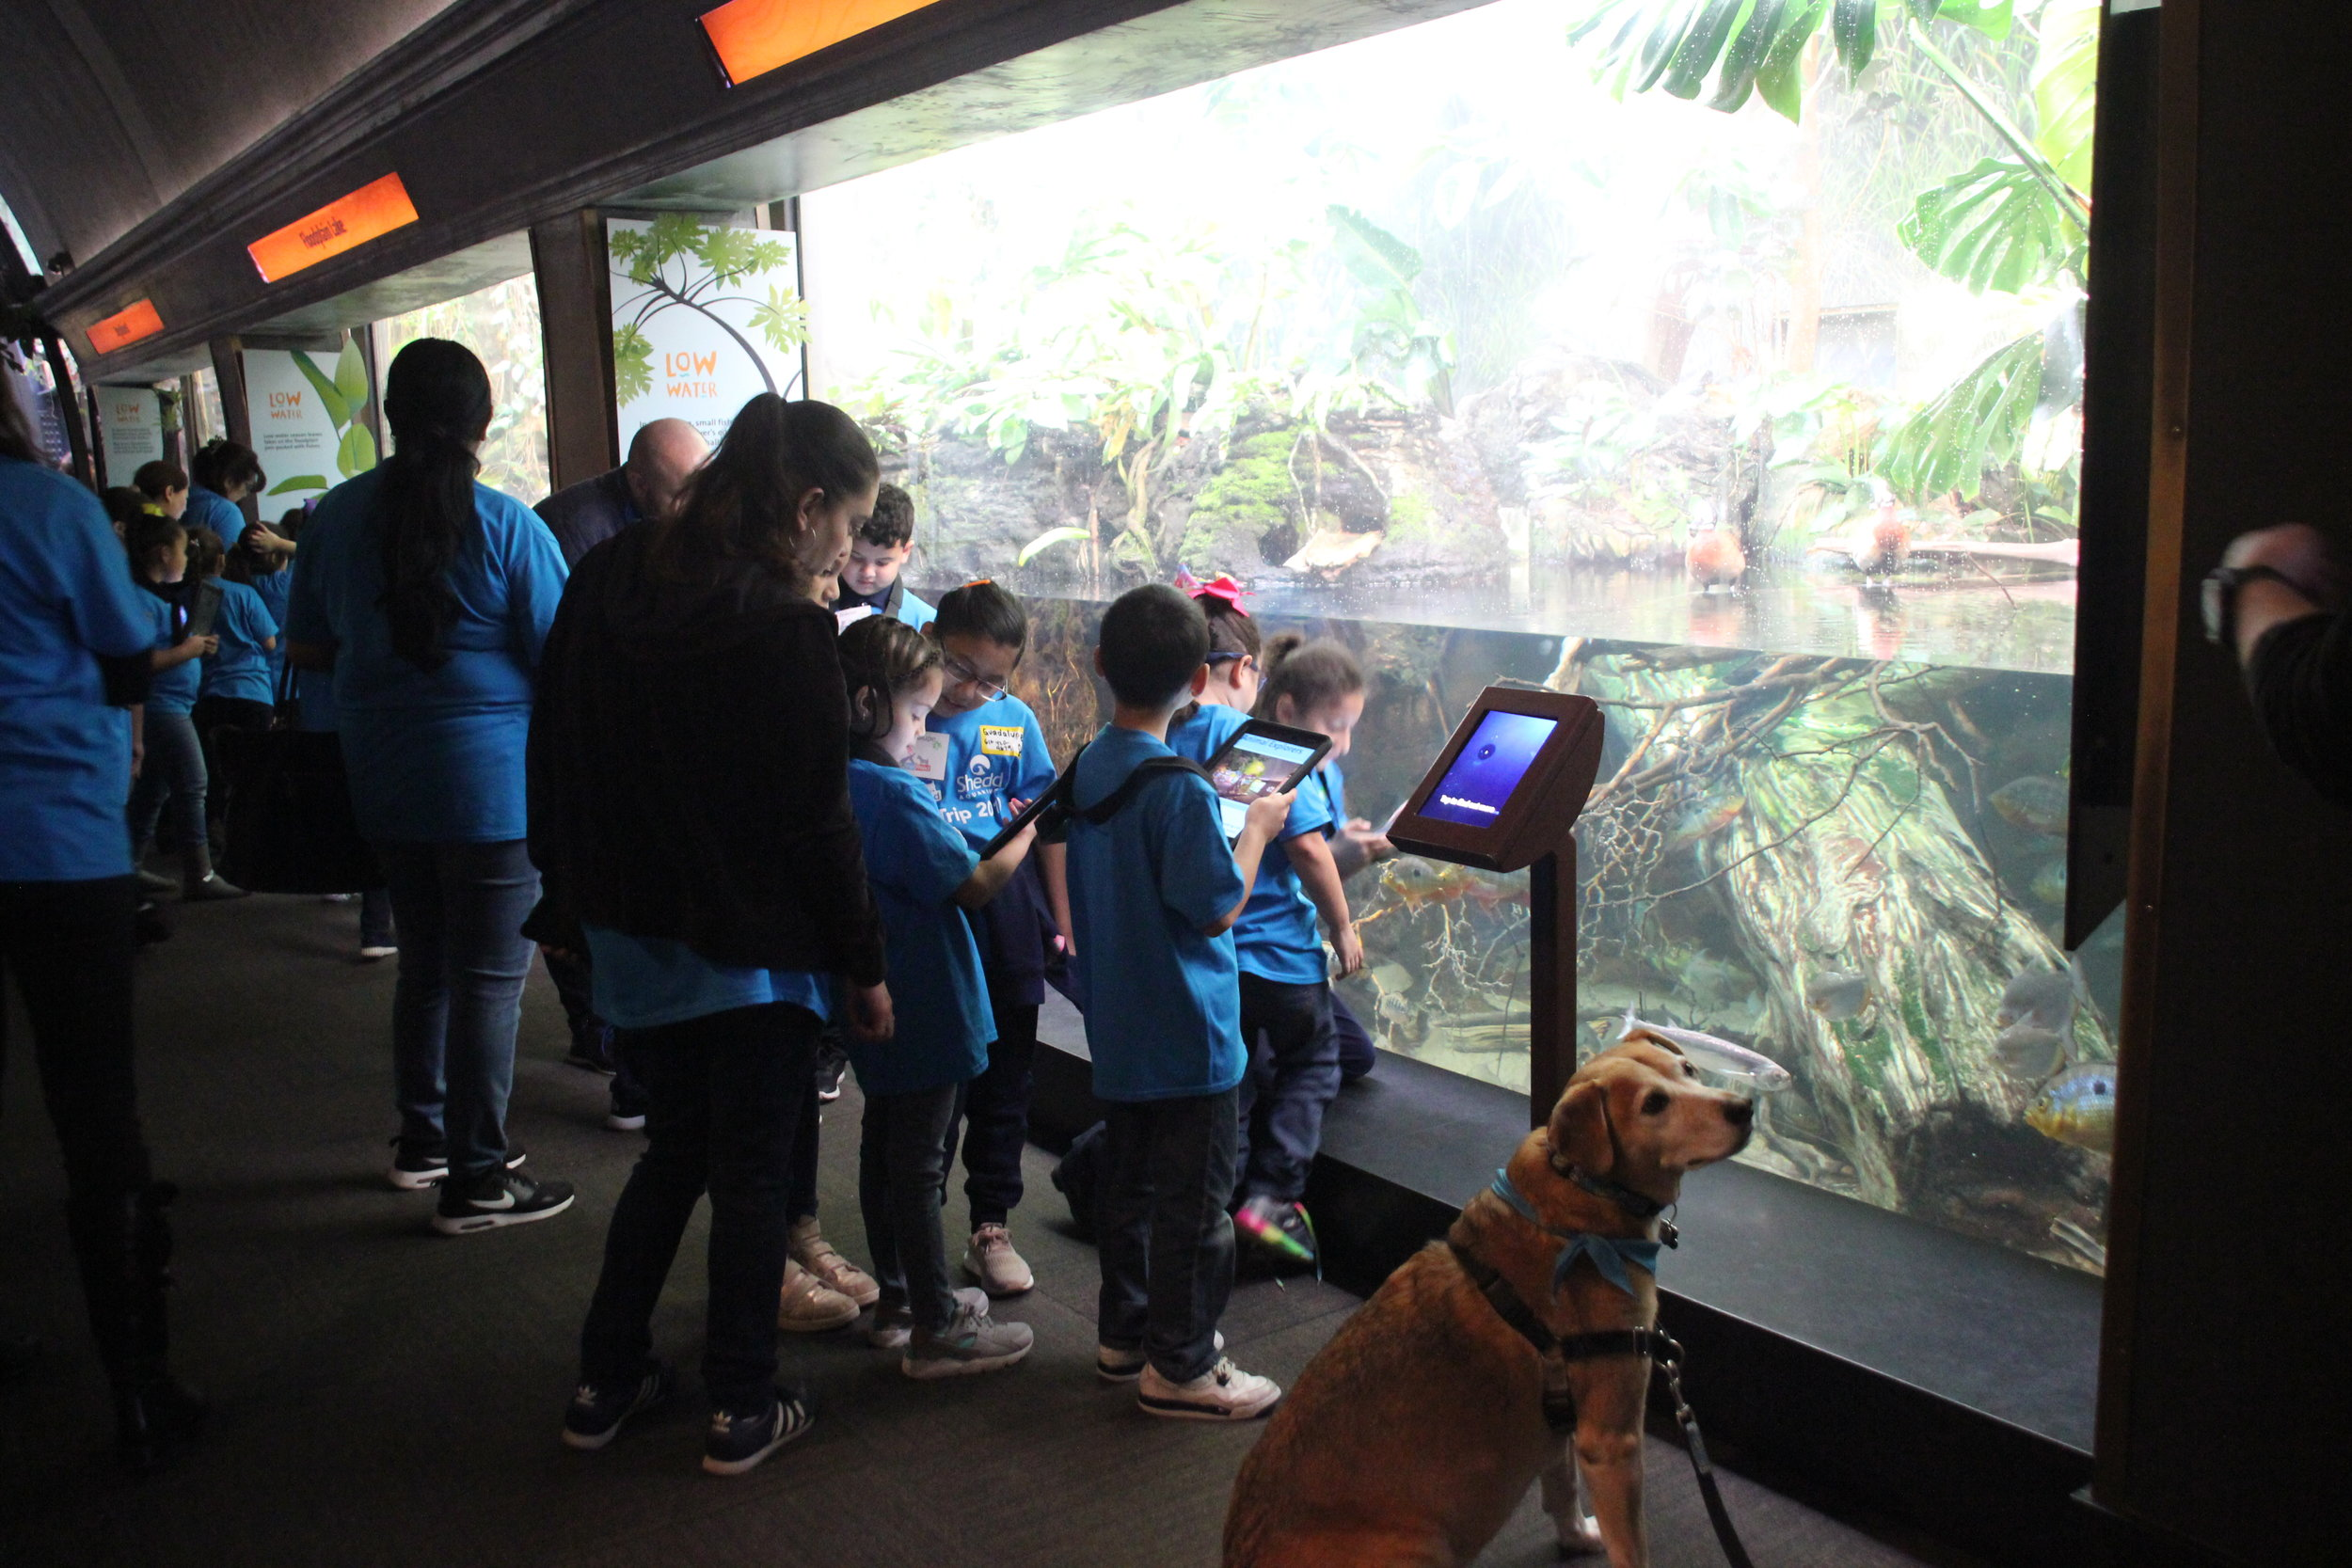 Second grade students from Funston Elementary use iPads to take pictures of animals and go through a guided activity about how animals blend into their environments.